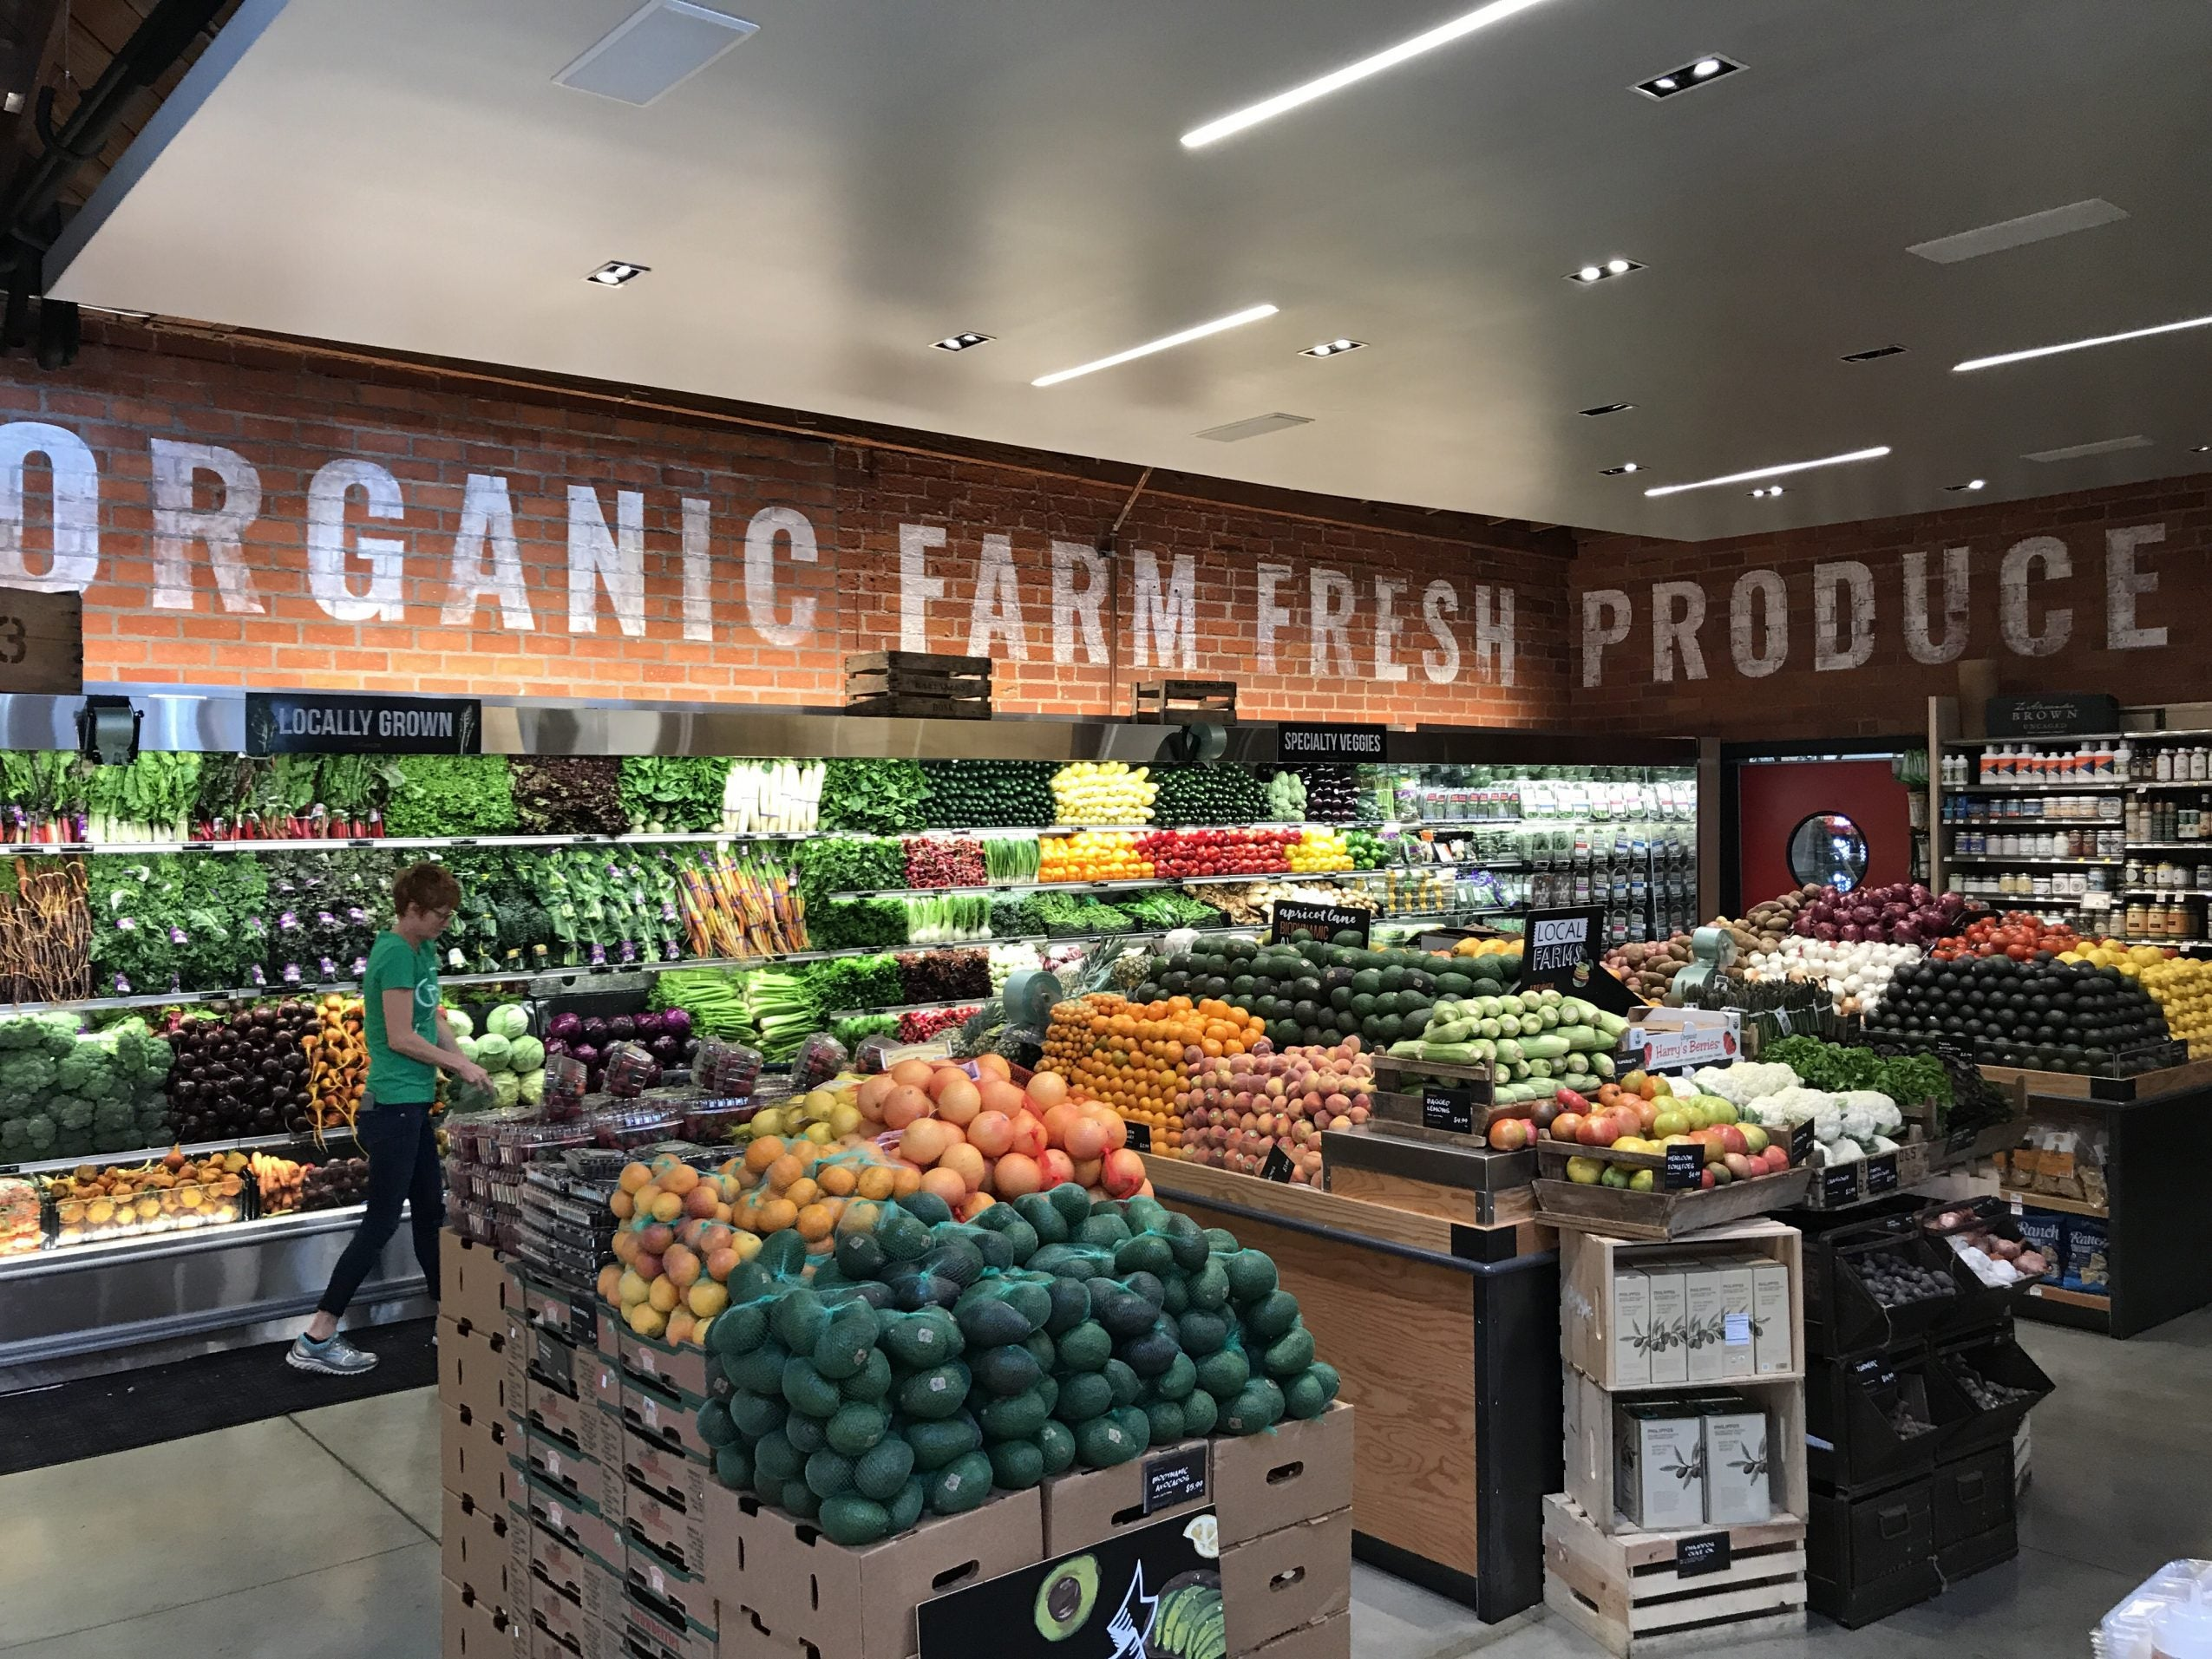 Organic produce at Erewhon Market in Venice, CA